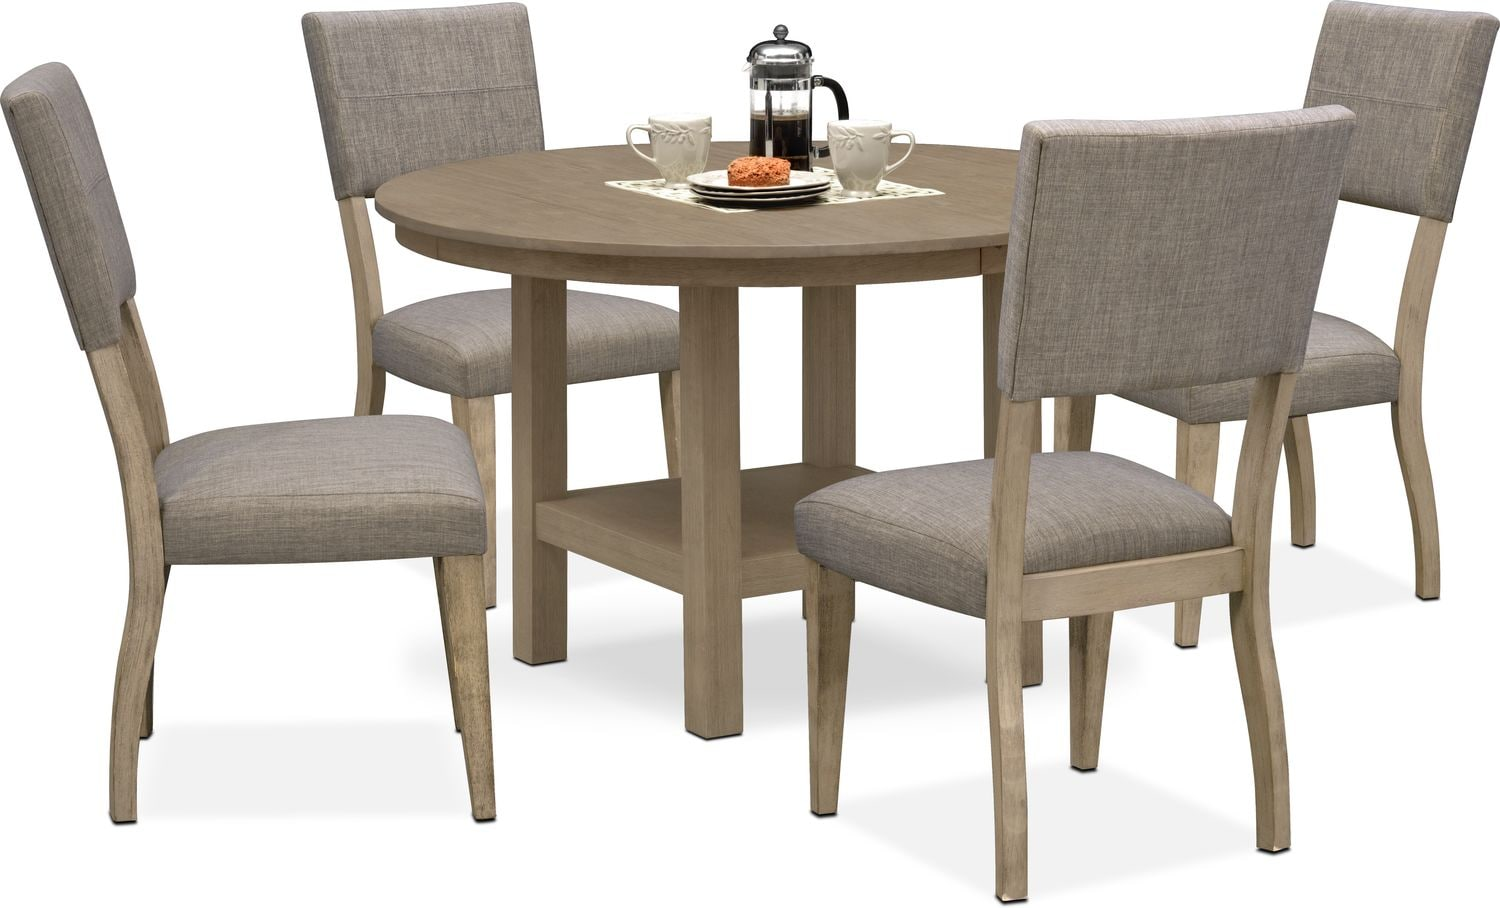 Dining Room Upholstered Chairs Tribeca Round Dining Table And 4 Upholstered Side Chairs